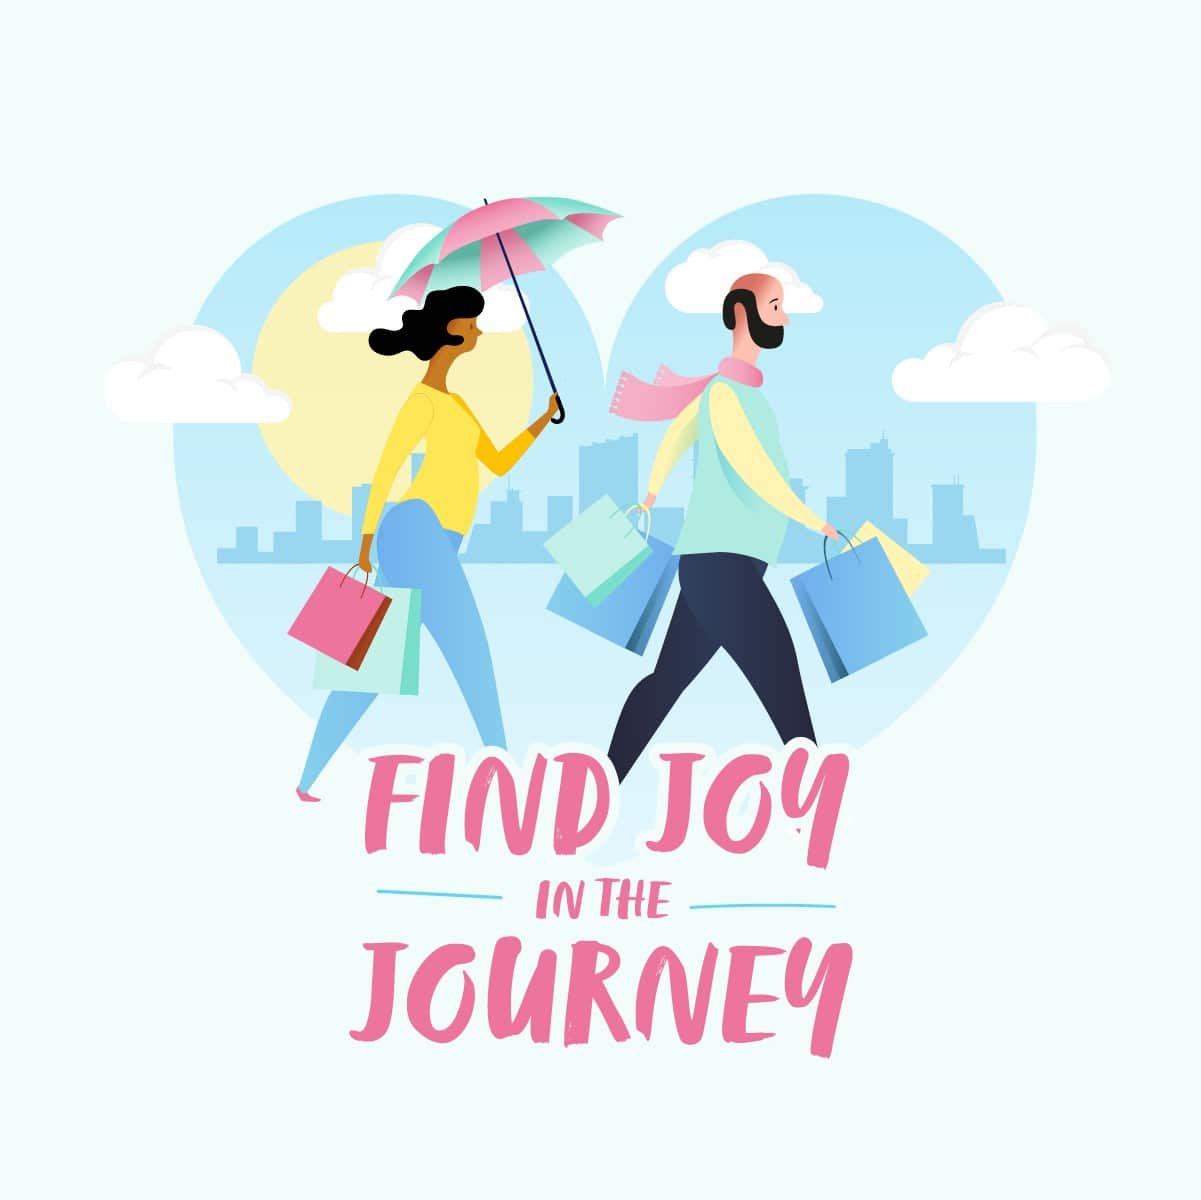 Find joy in the journey couple walking with shopping bags